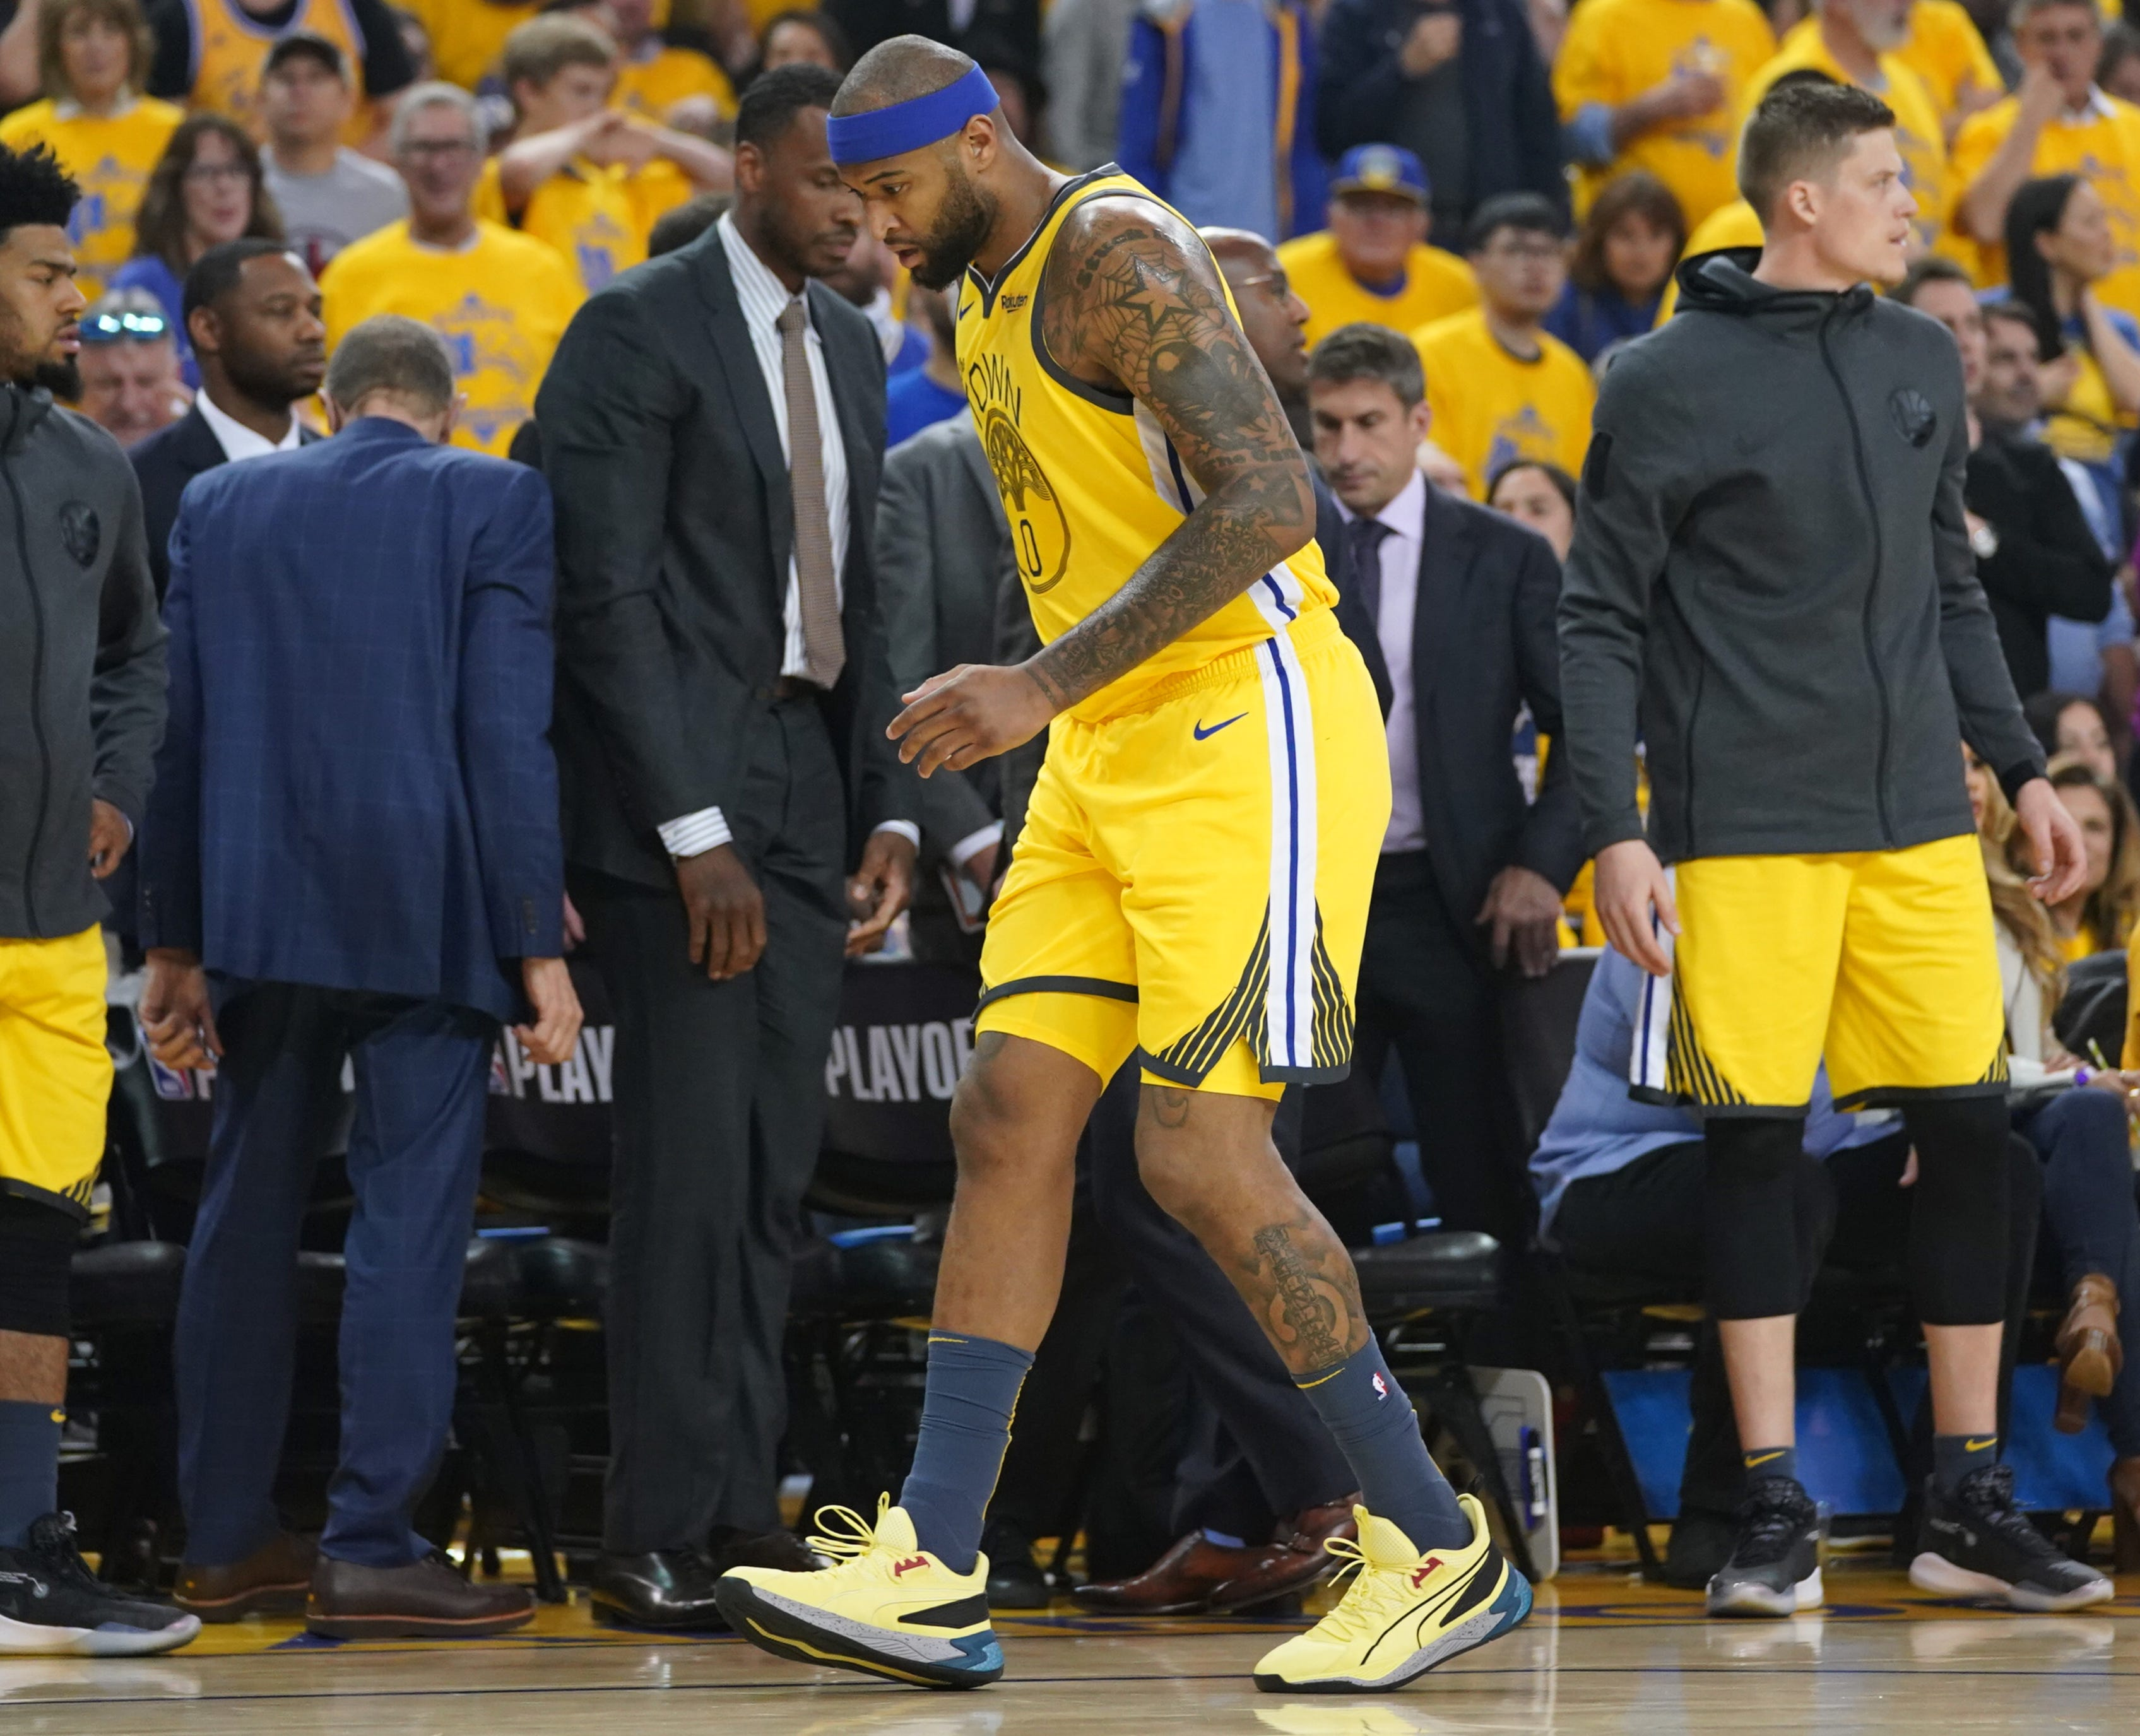 April 15: Warriors center DeMarcus Cousins limps off the floor after a quad injury early in Game 2 against the Clippers.